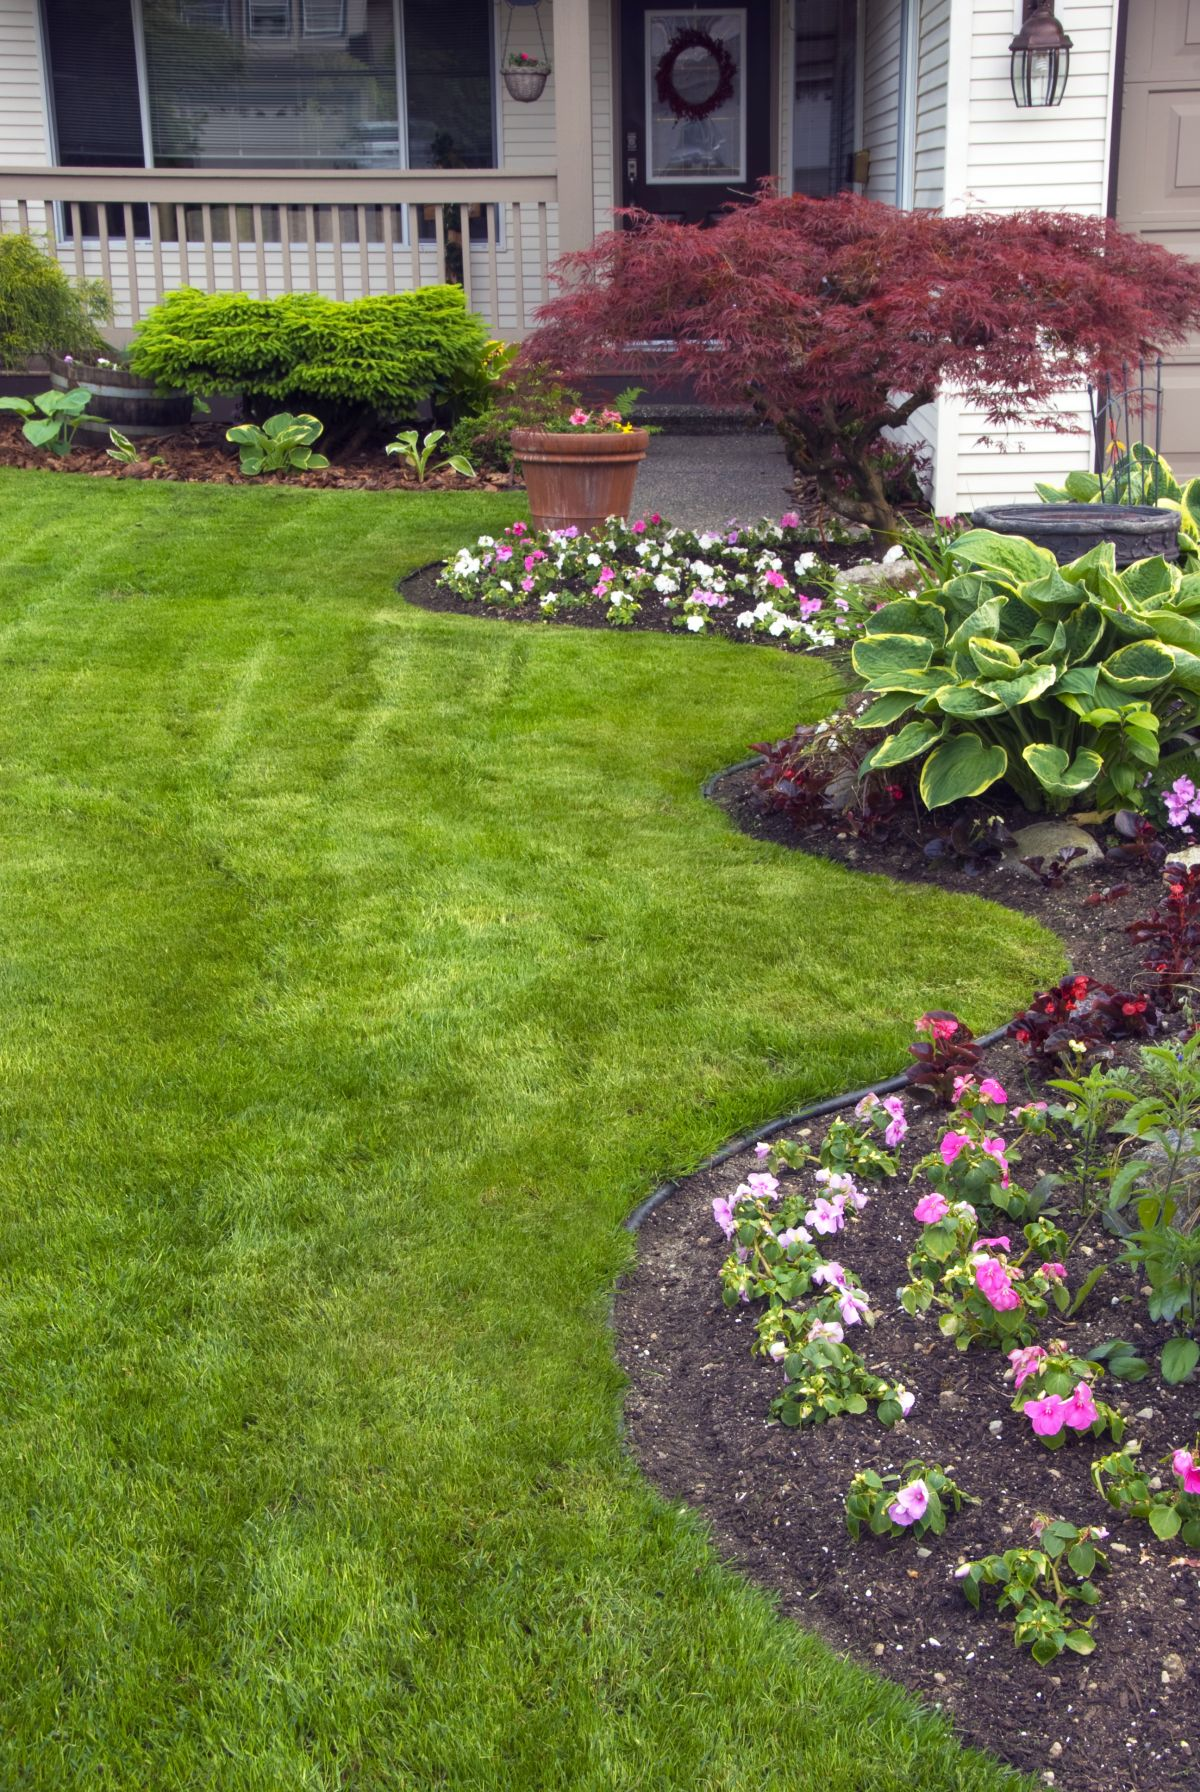 There are a few ways you can get a healthy, beautiful lawn to enjoy this summer.